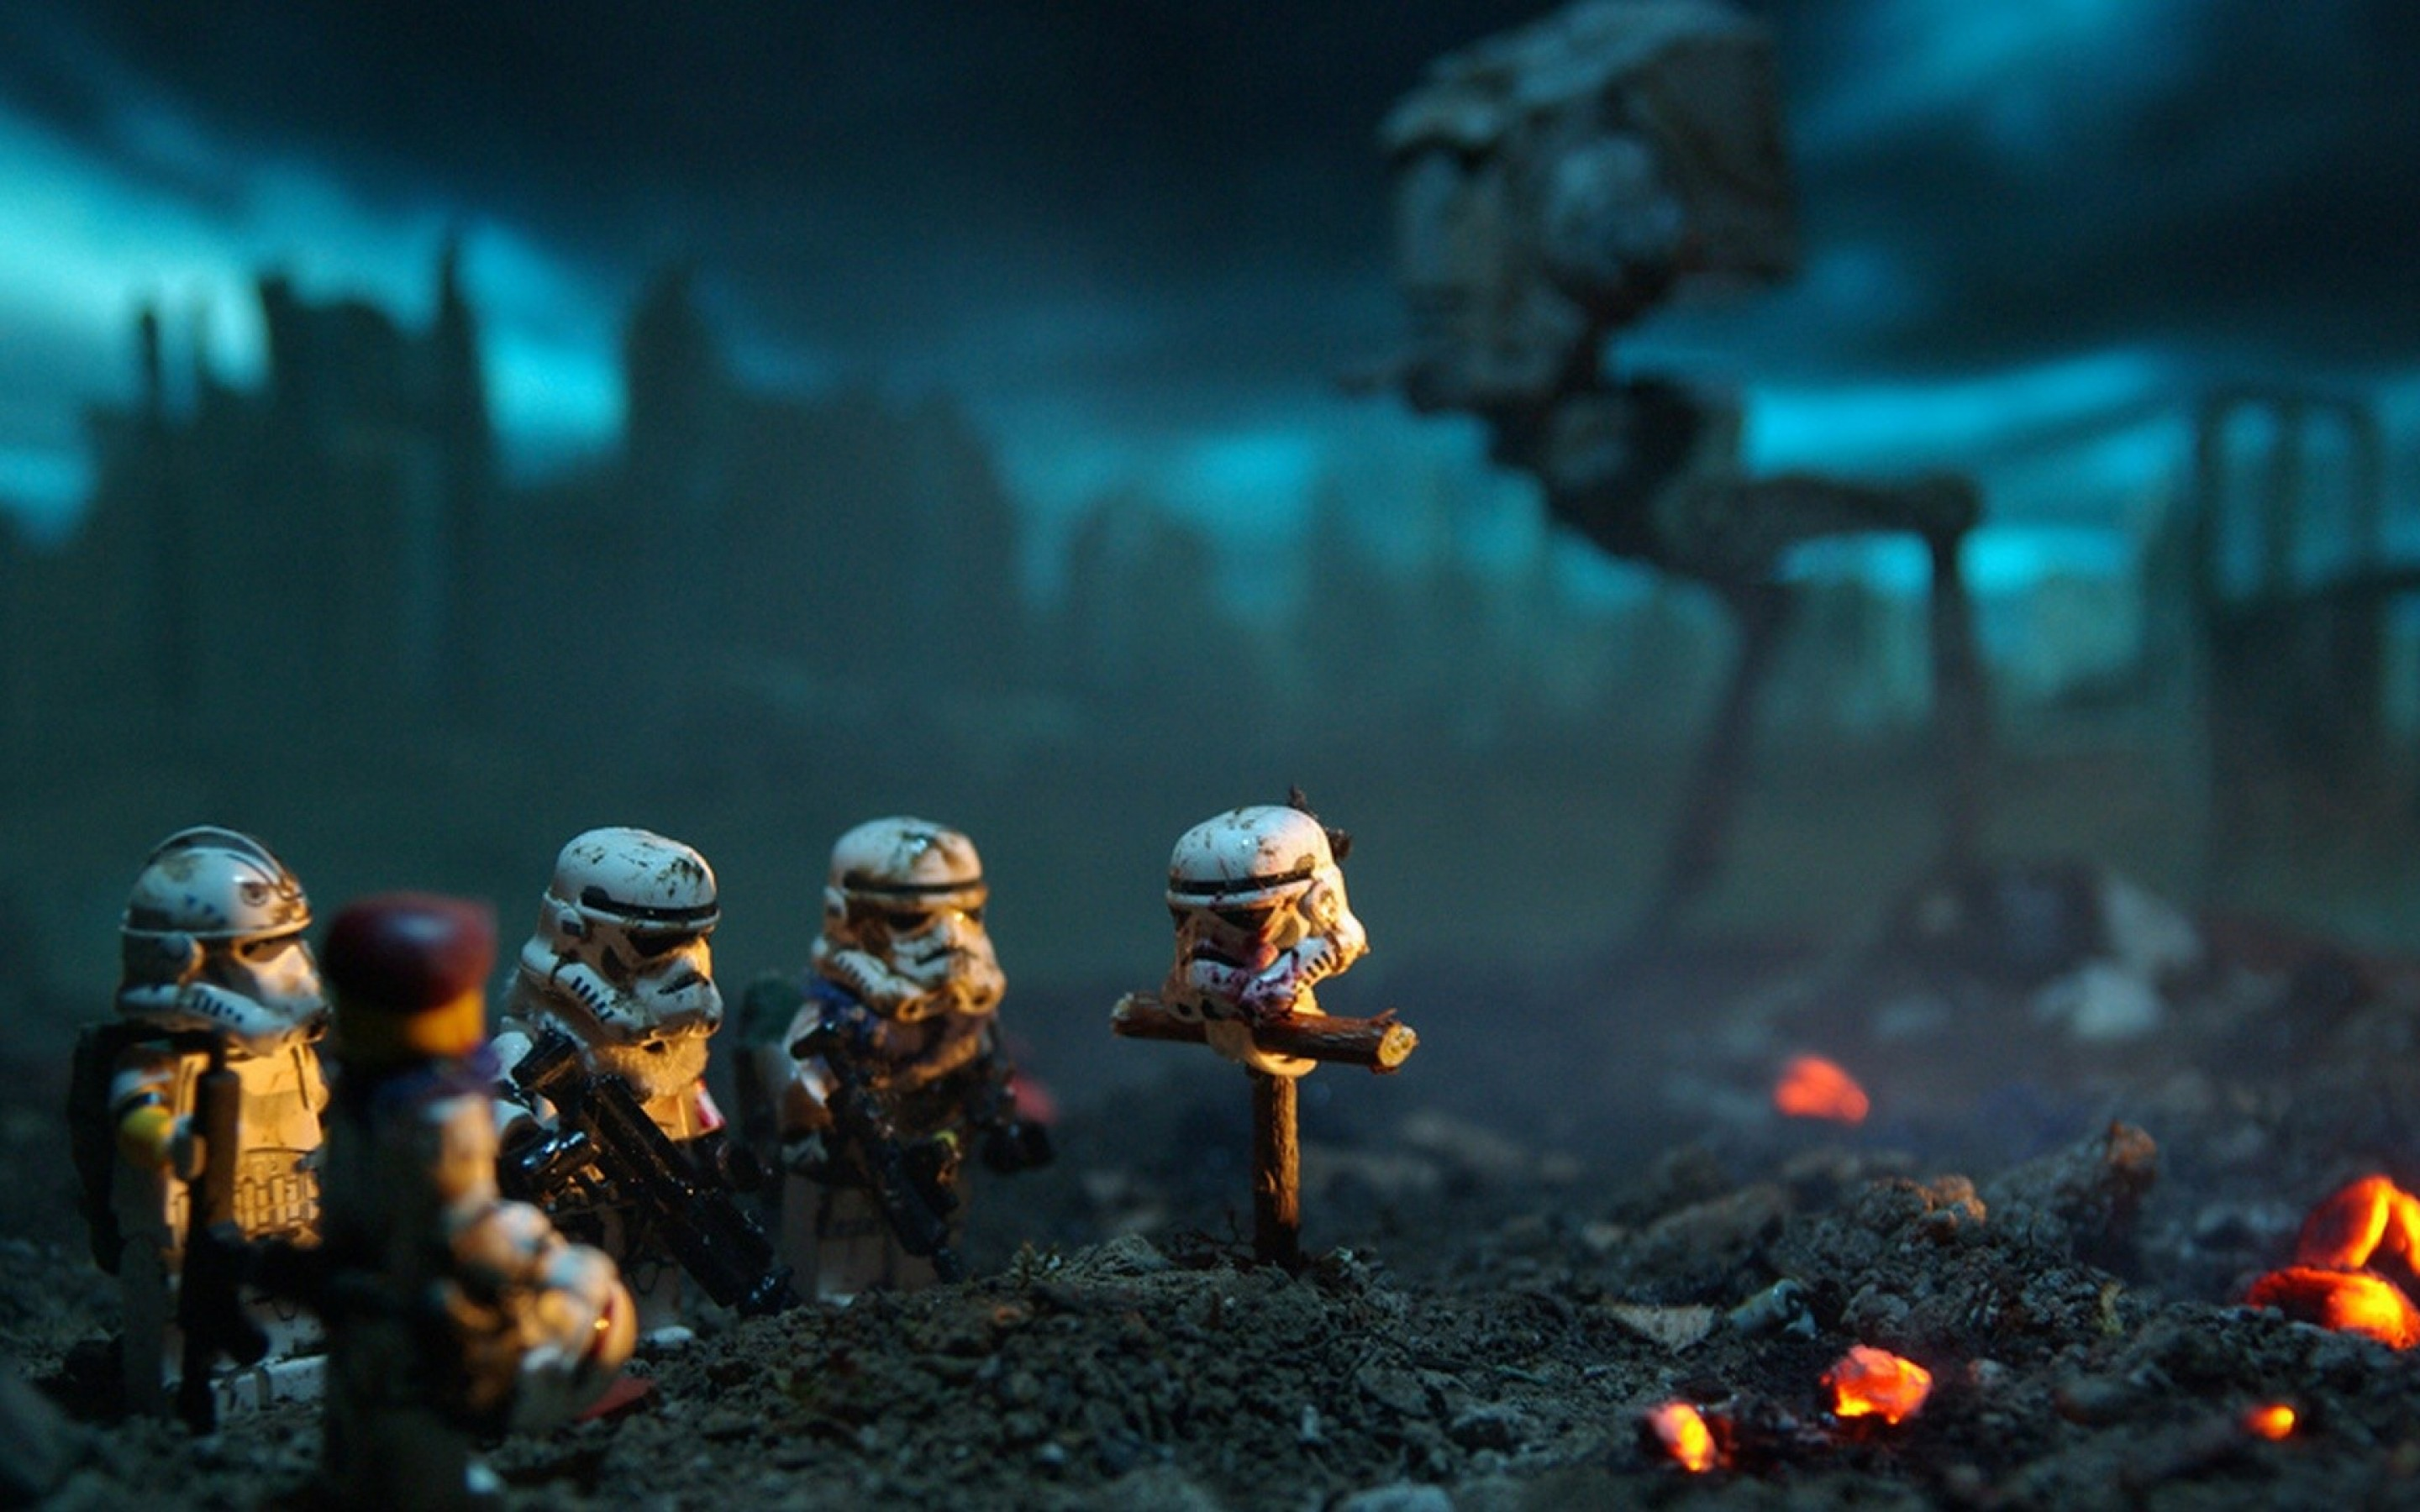 Free Lego Star Wars Hd Wallpaper for Desktop and Mobiles 15